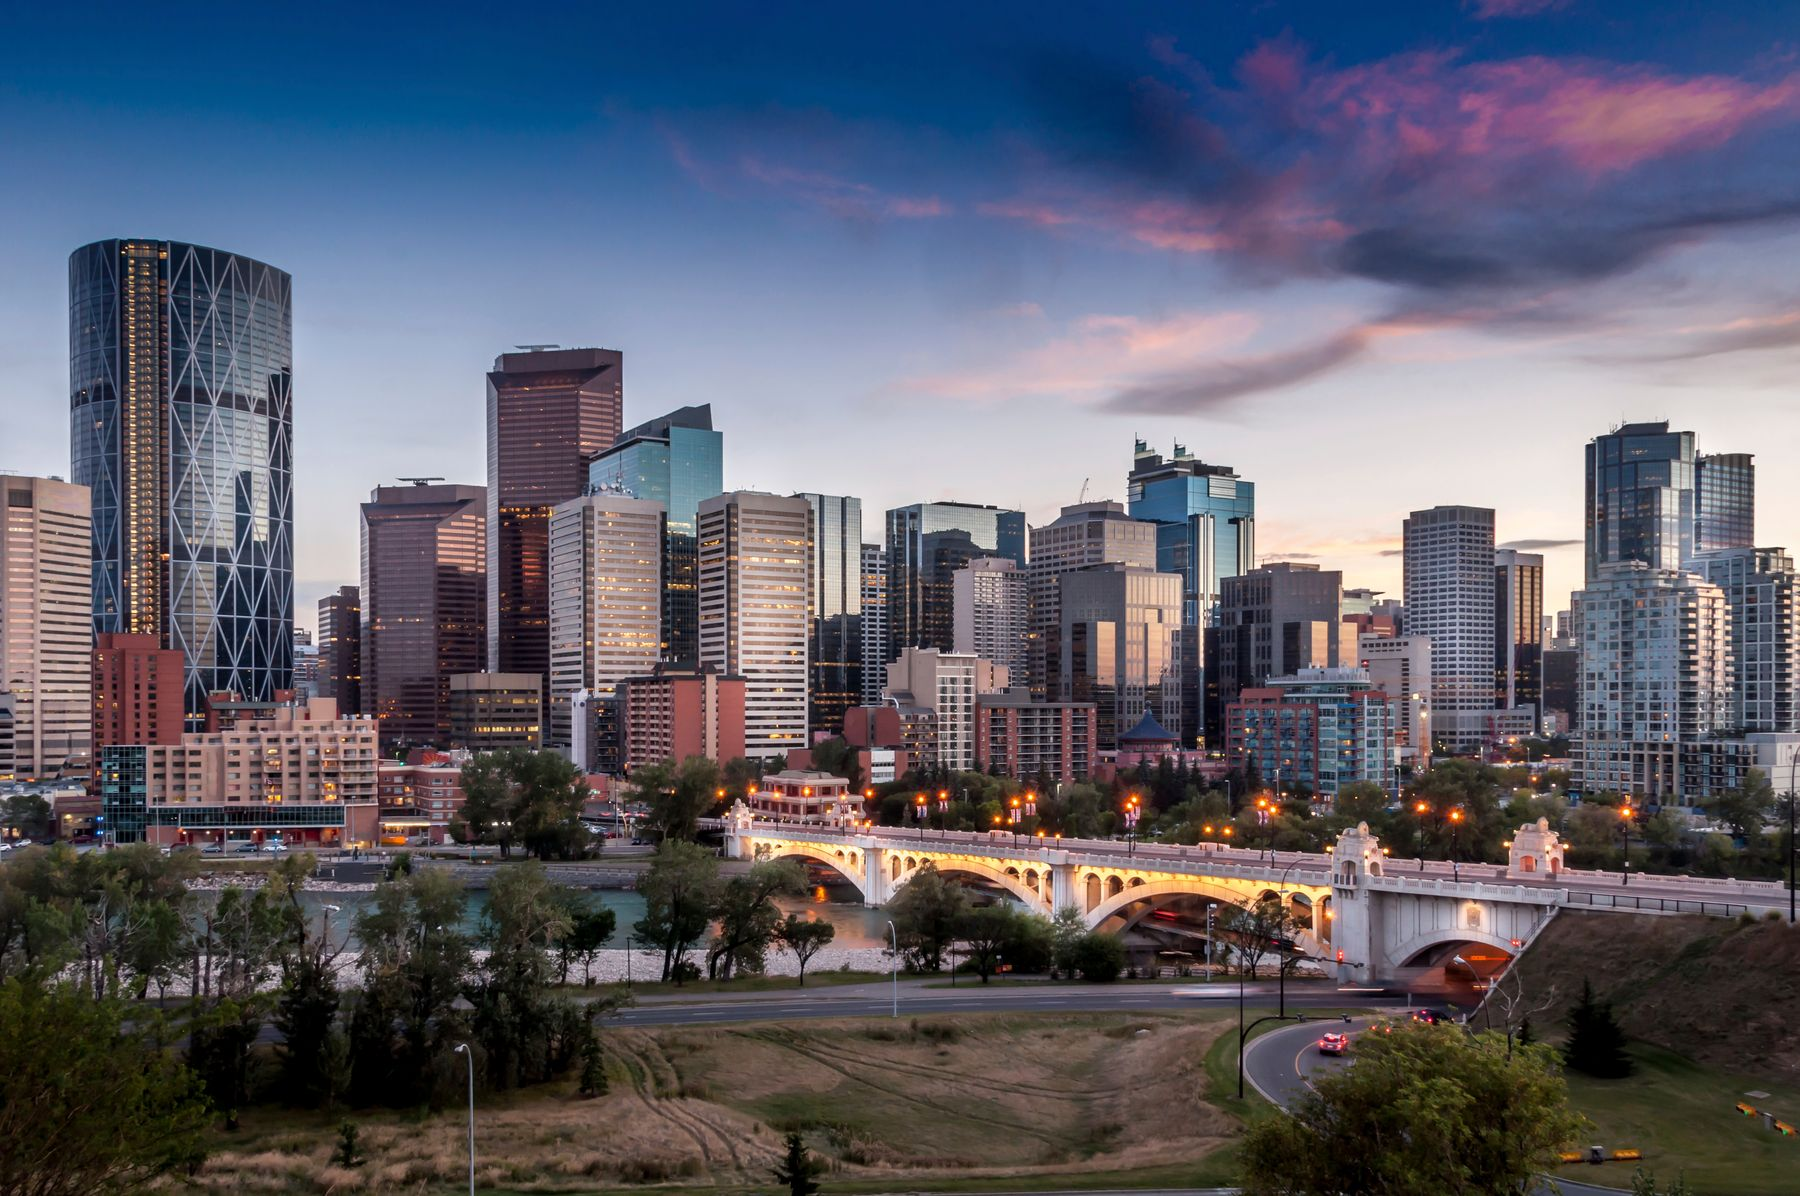 downtown Calgary at sunset